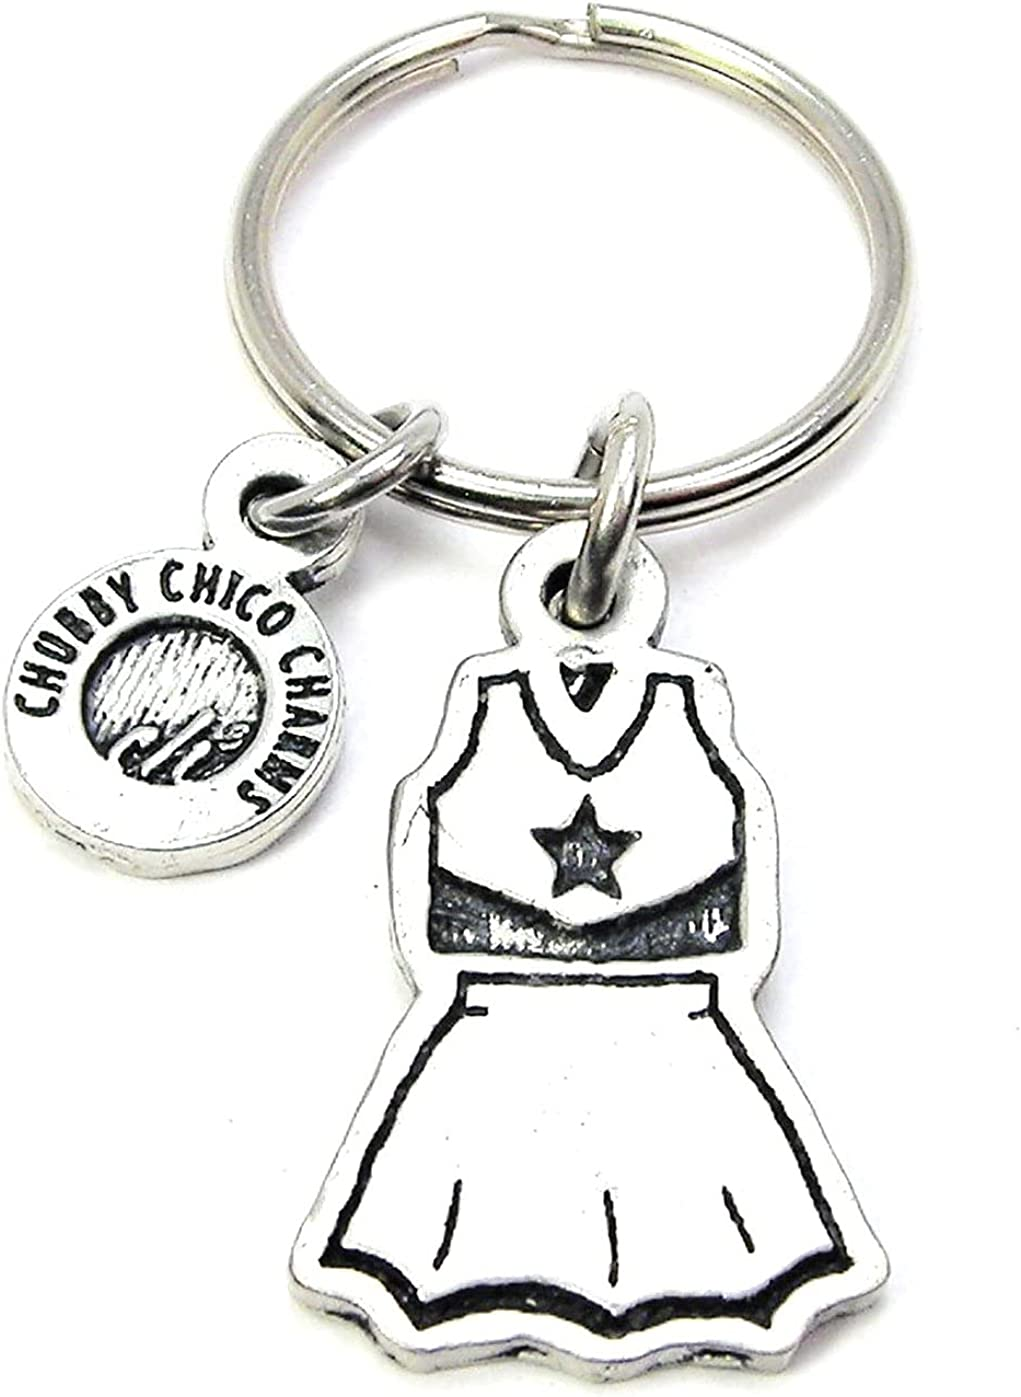 ChubbyChicoCharms Cheerleader Uniform Pewter Charm On Stainless Steel Keyring Key Ring Key Chain Keychain for Women, Men, Teens, Young Adults, School Sports, Football